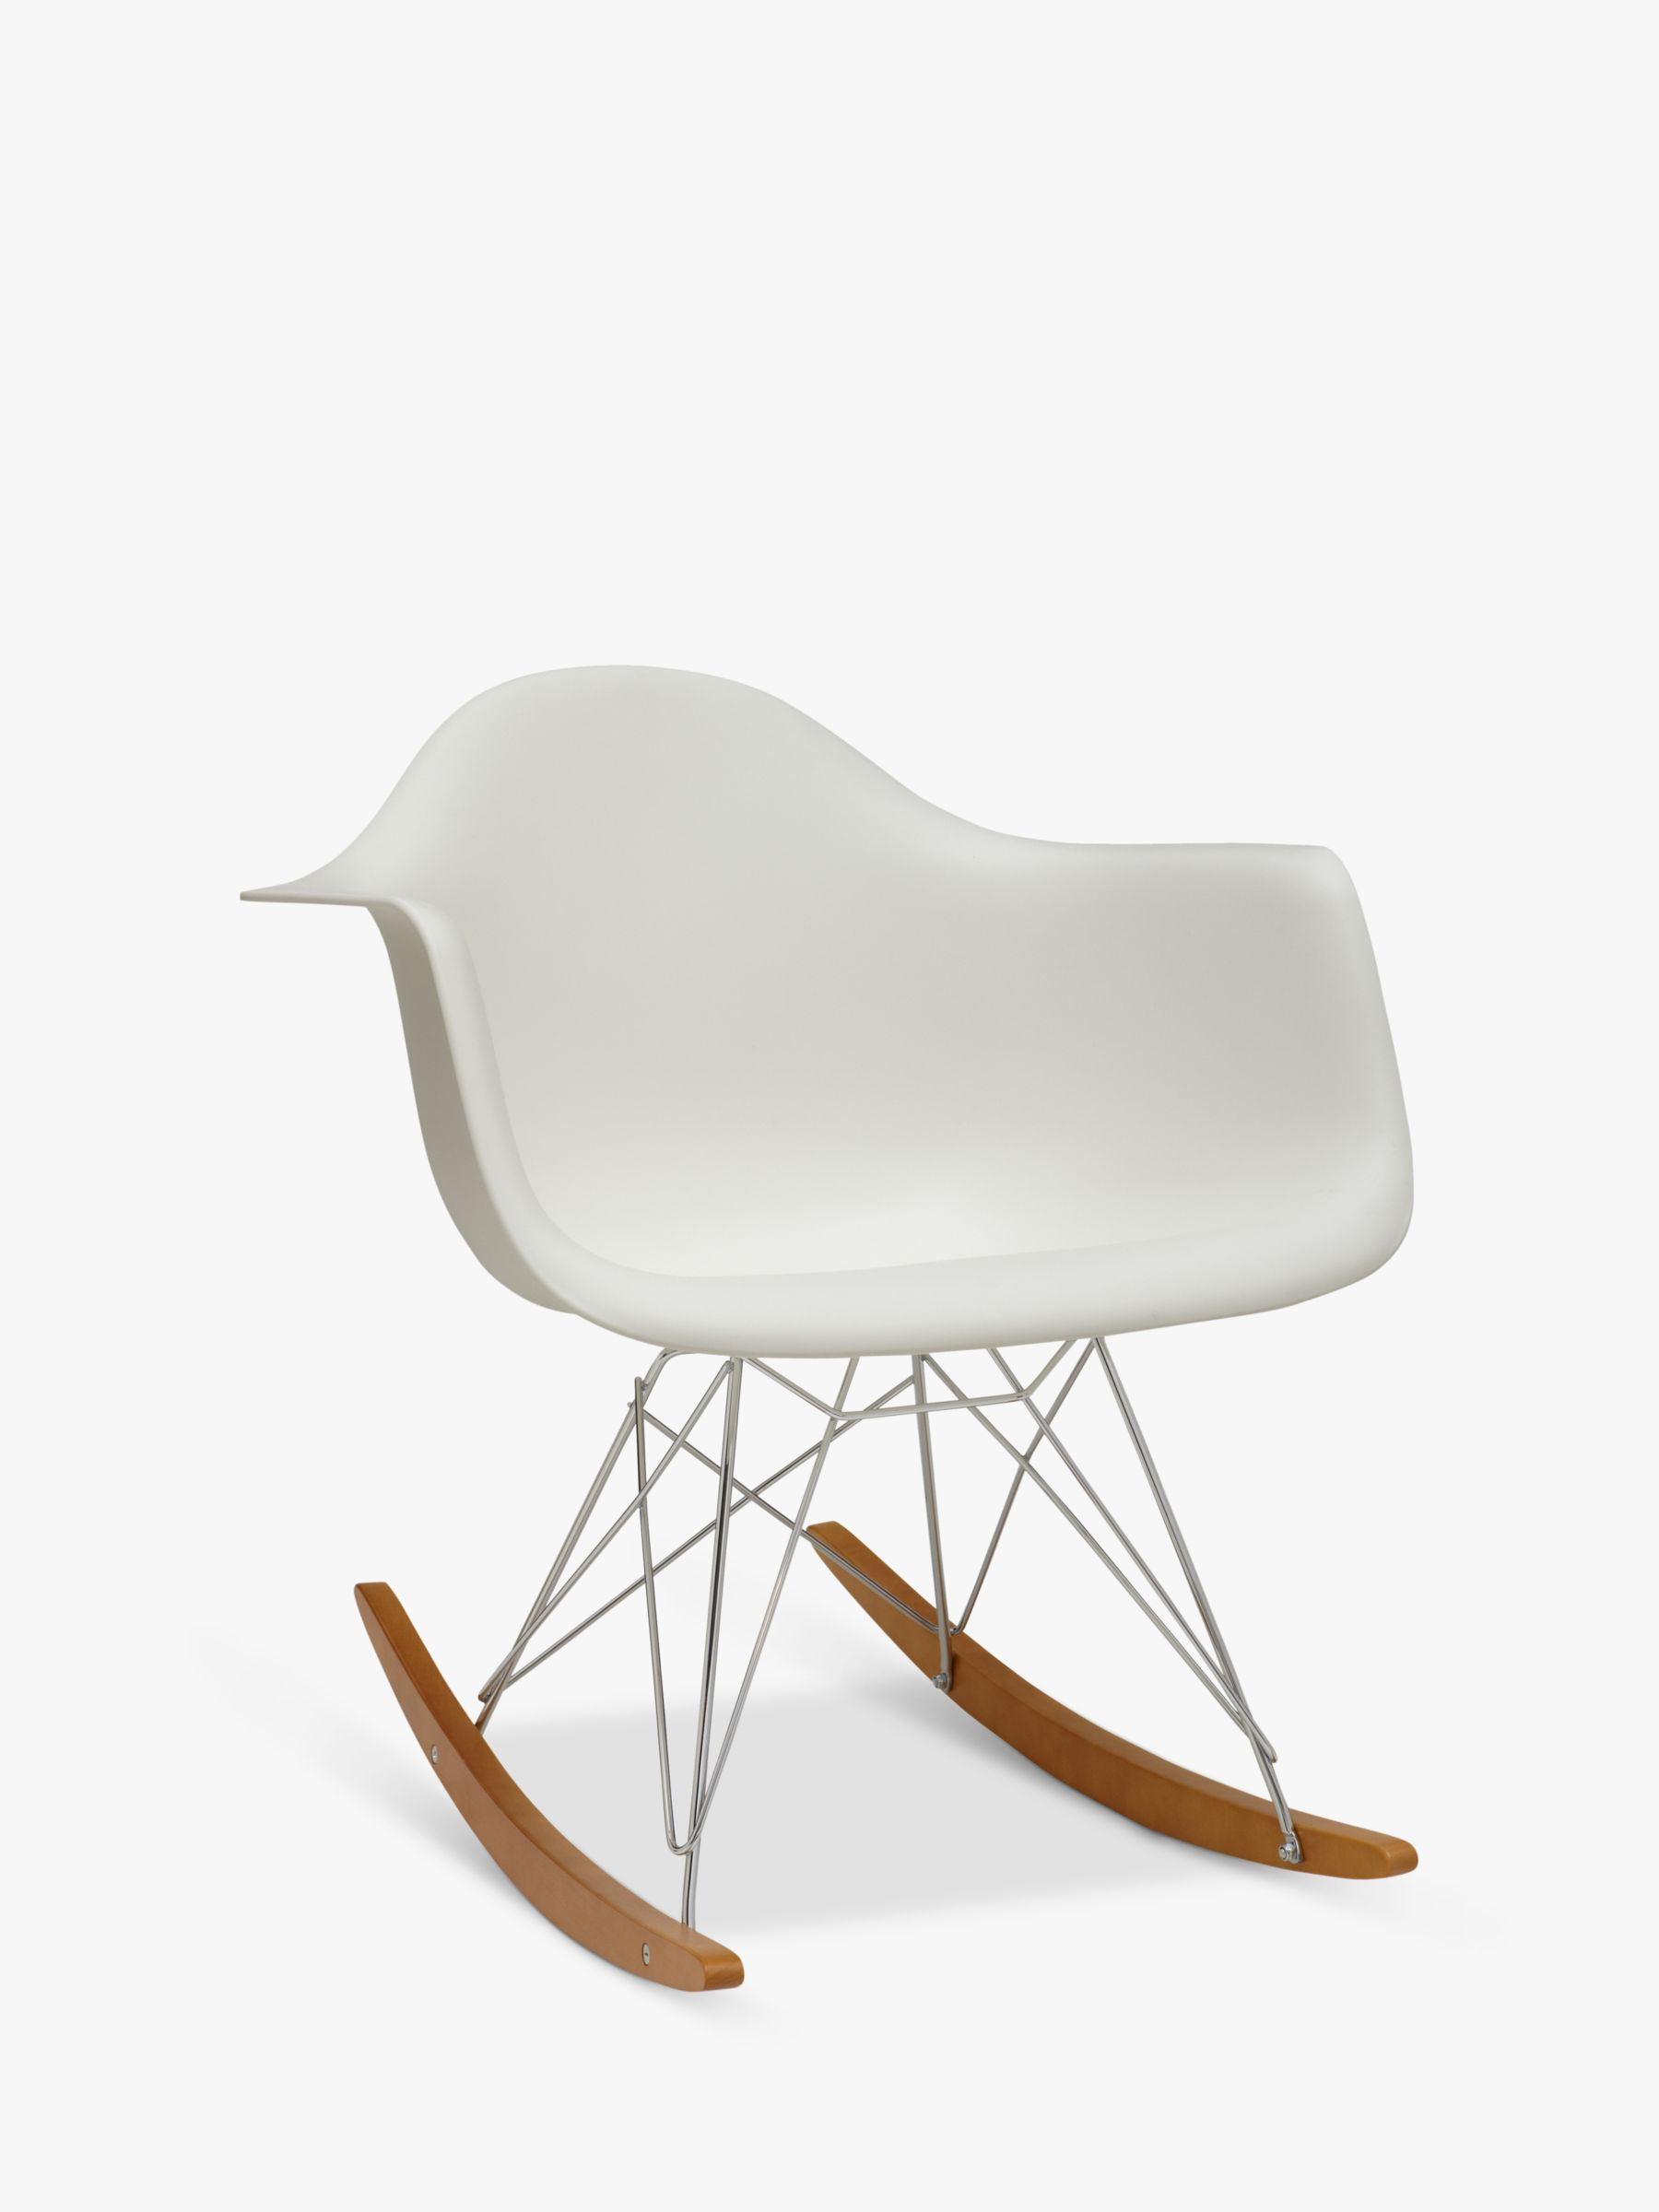 Eames Chair Price Vitra Eames Rar Rocking Chair White At John Lewis